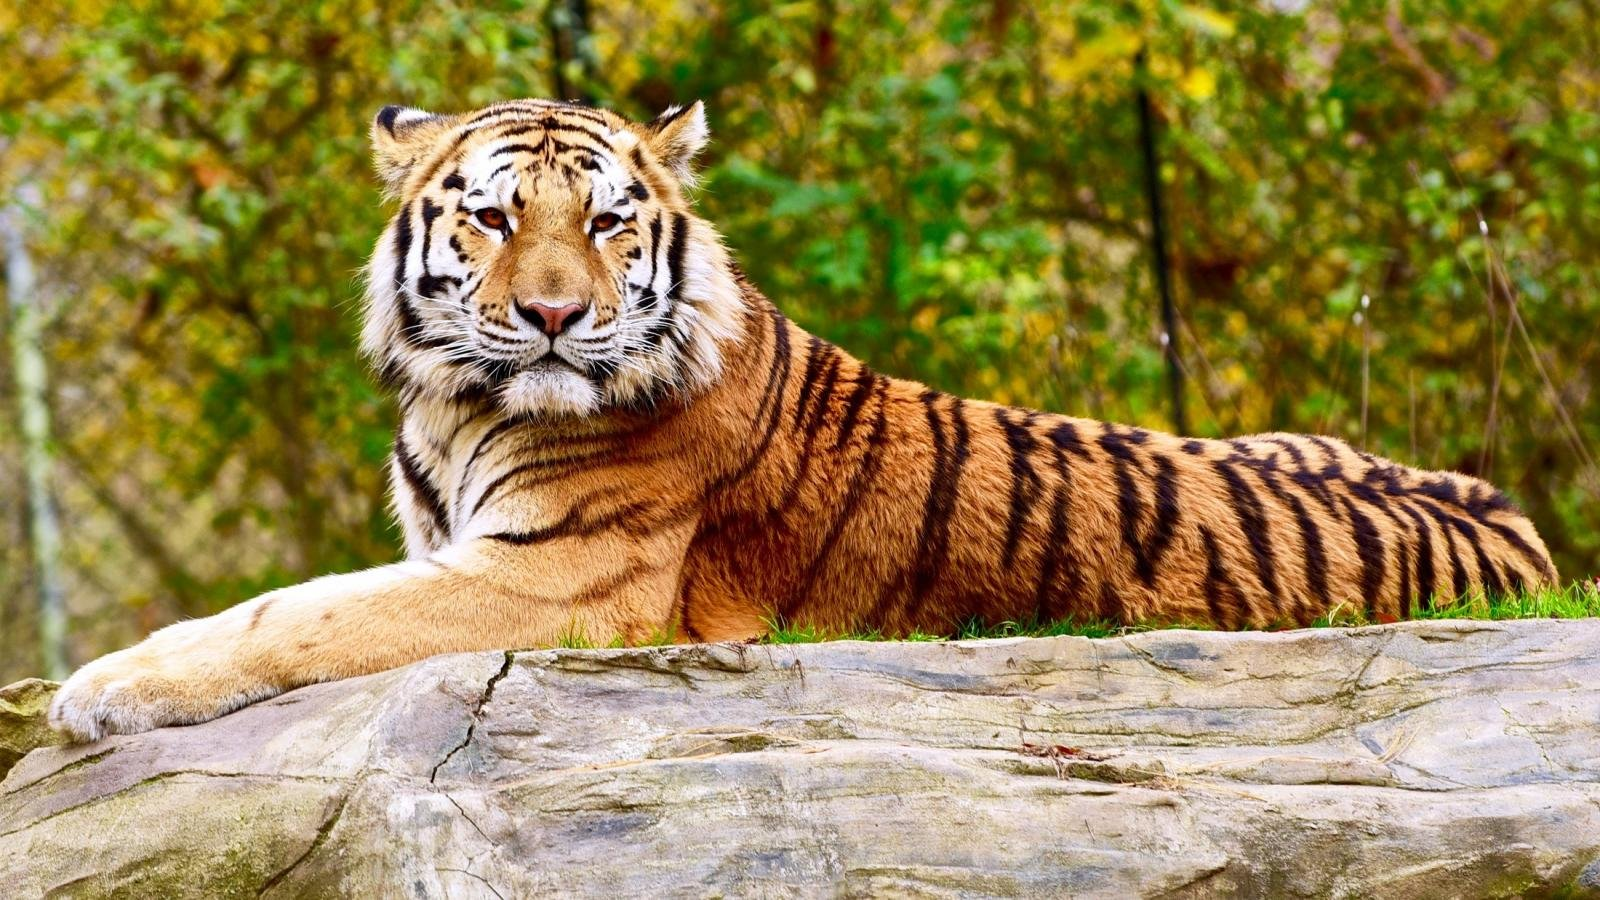 Free Tiger high quality wallpaper ID:116201 for hd 1600x900 computer